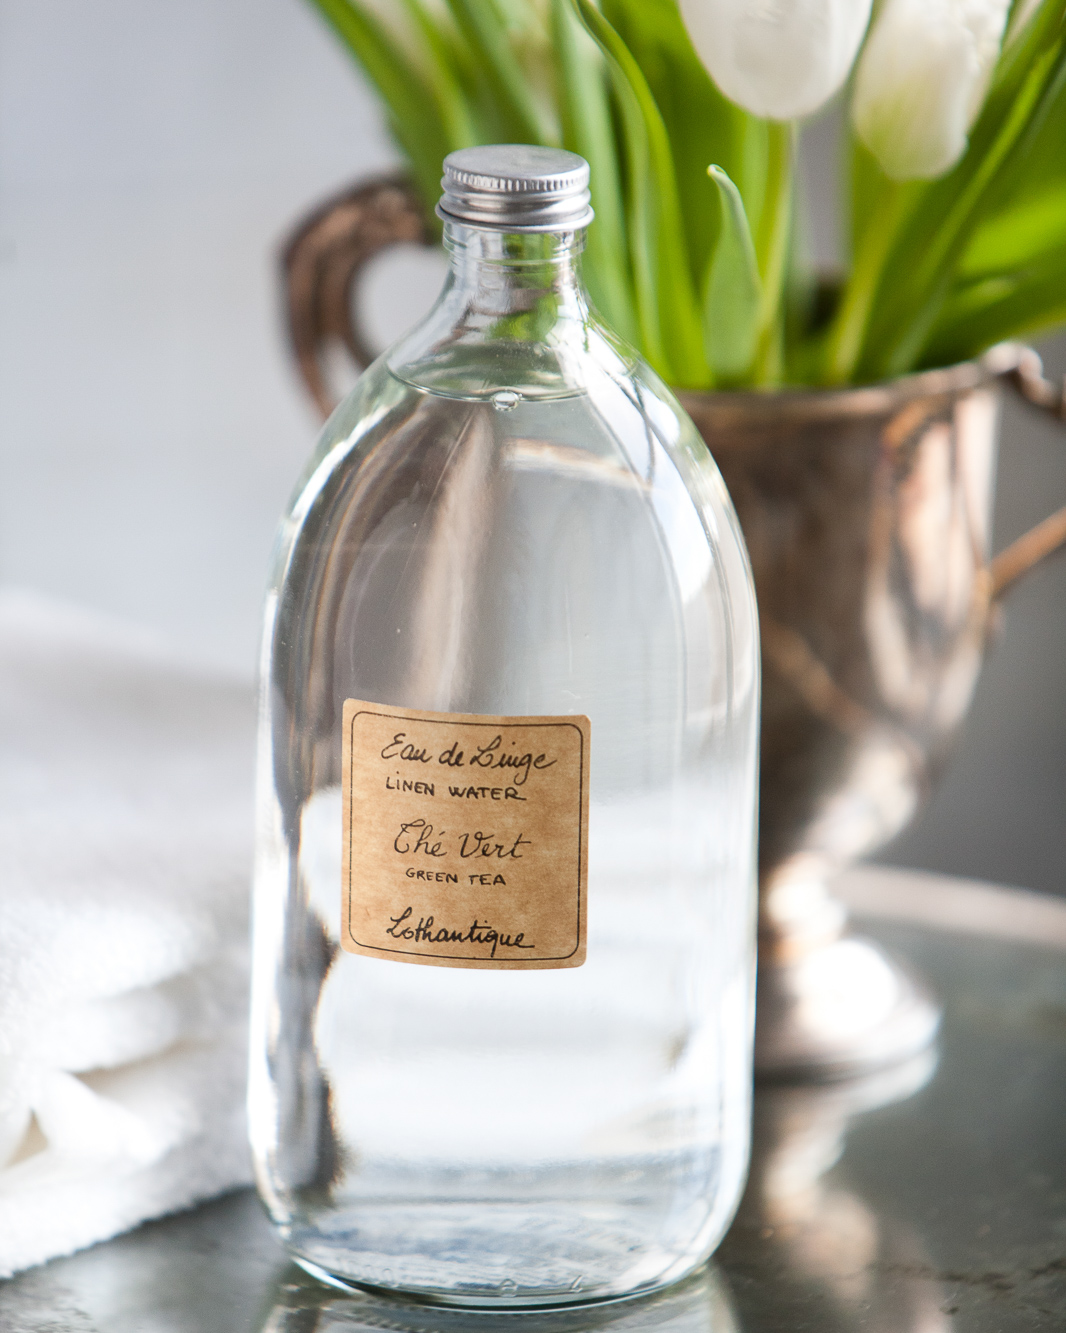 Linen water in a clear bottle with a hand written label and white tulips.